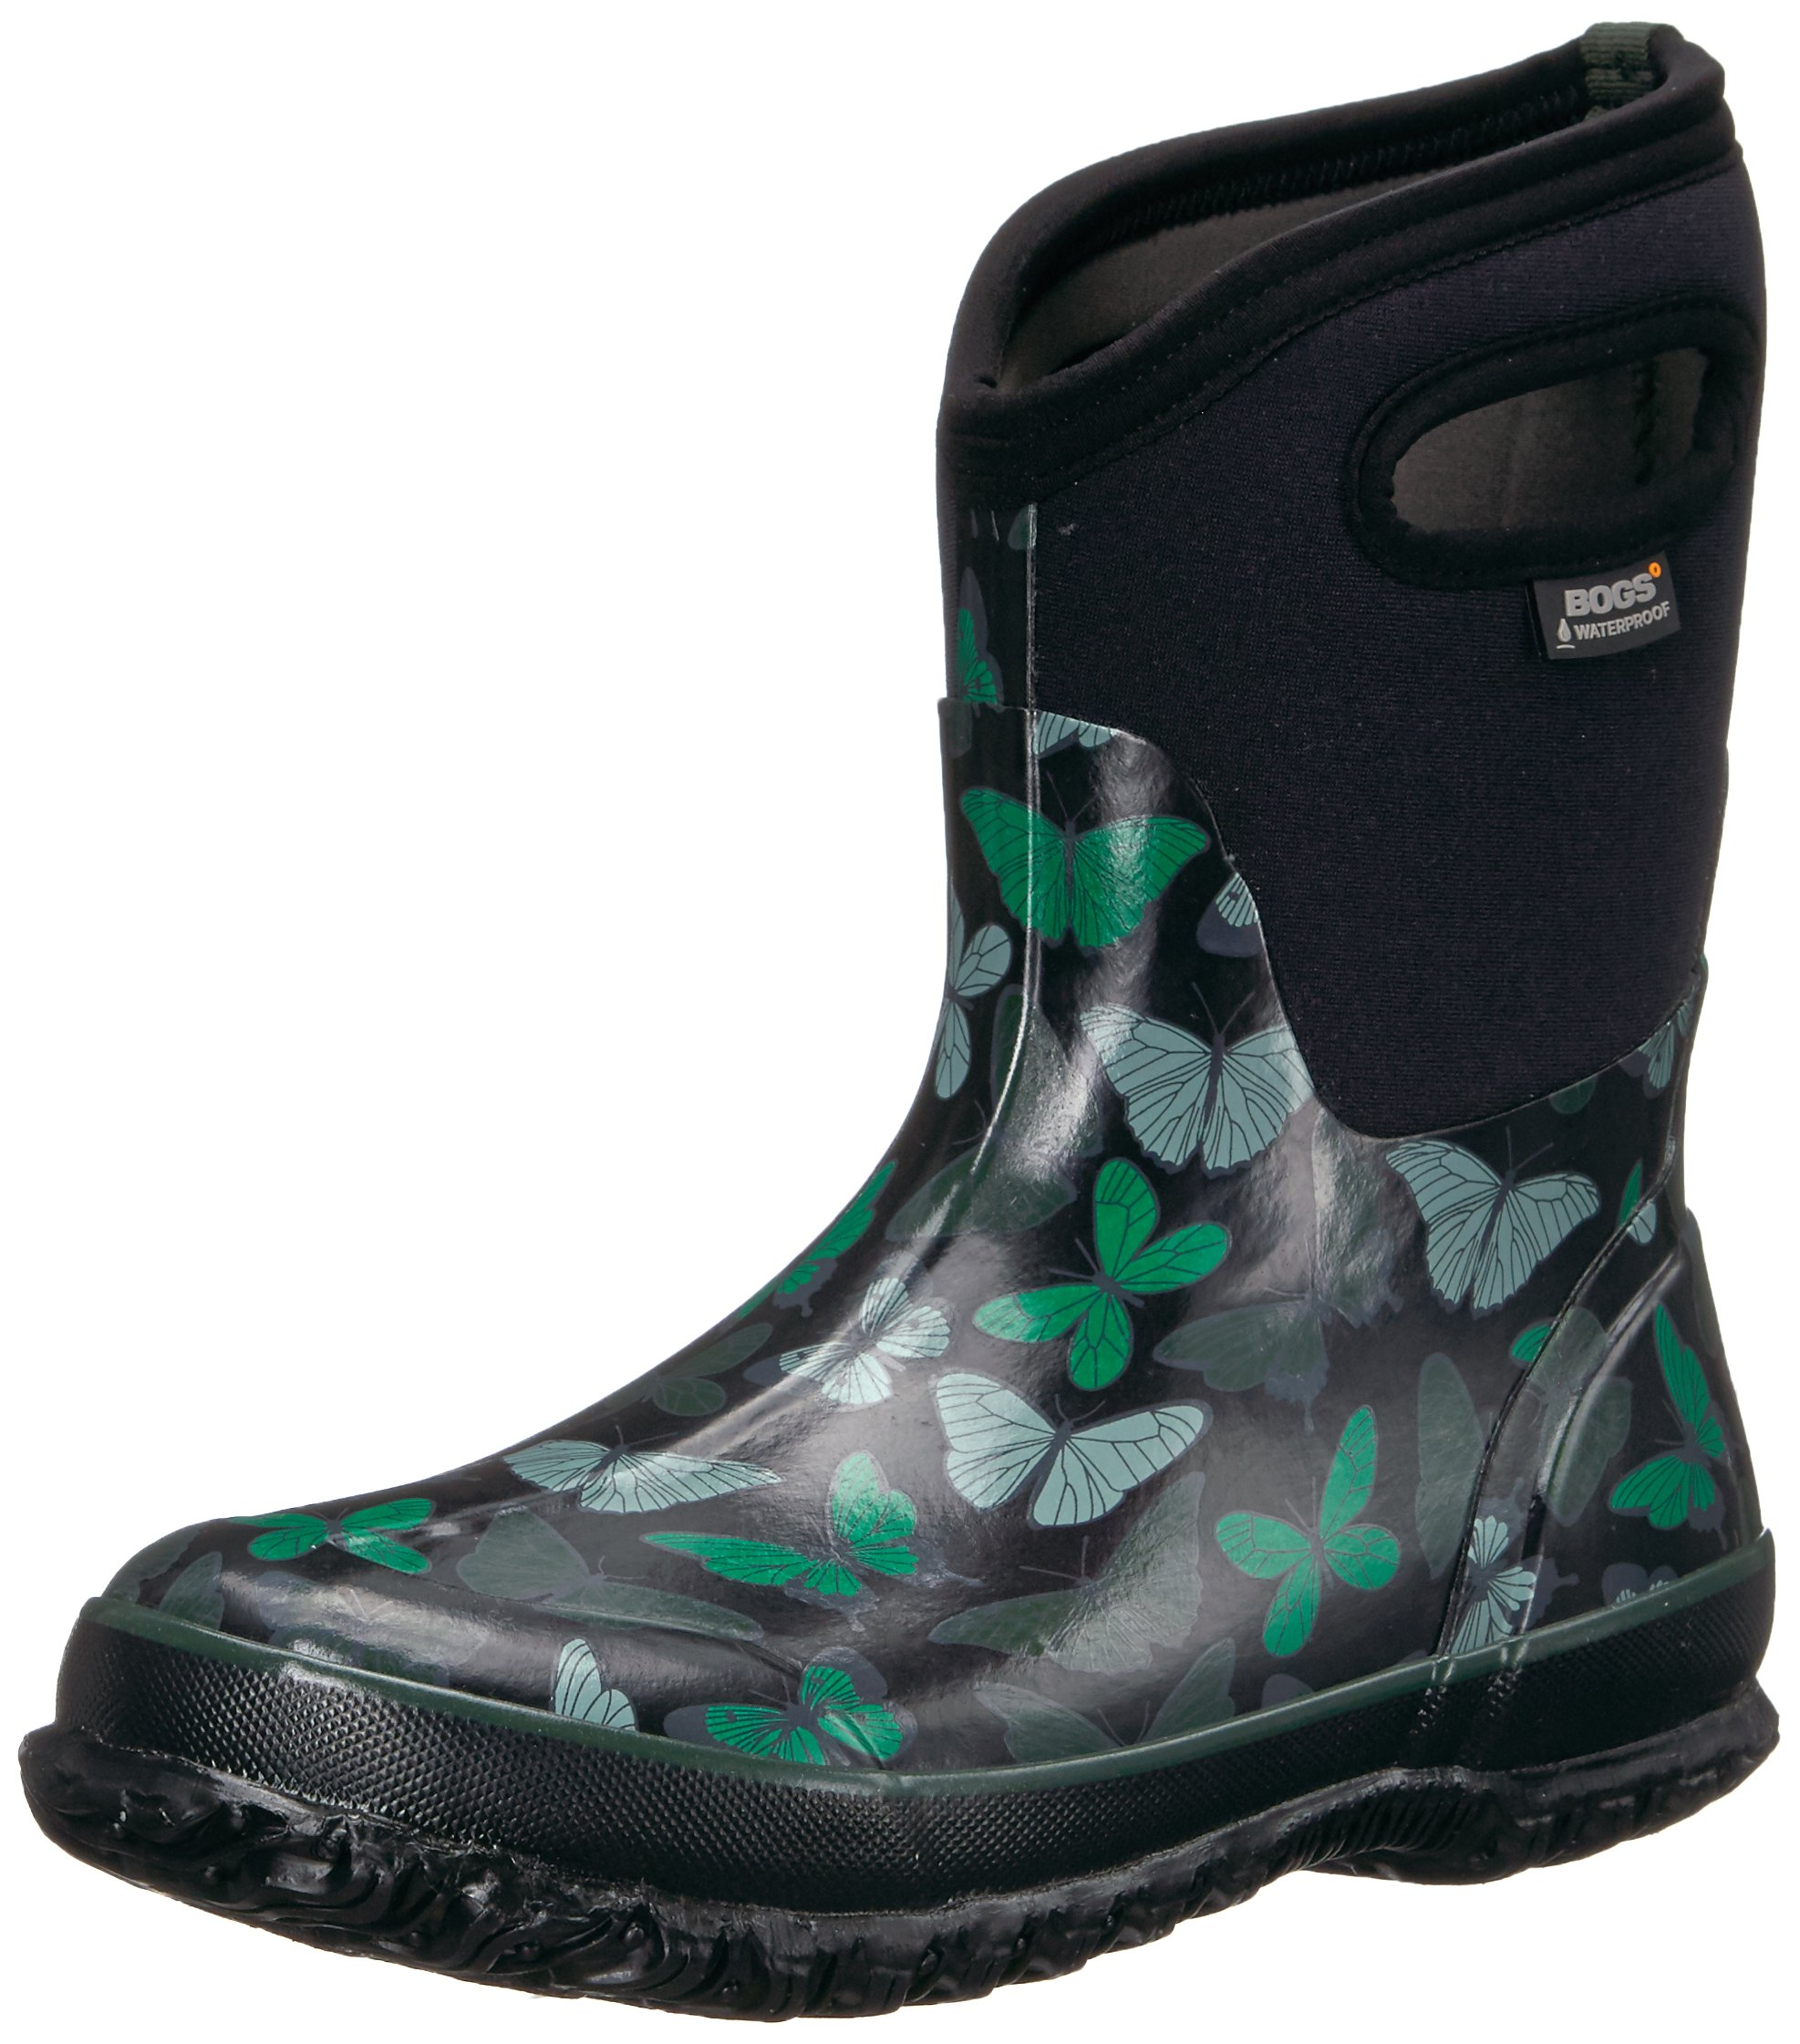 Bogs Women's Classic Butterflies Mid Snow Boot, Black/Multi, 9 M US